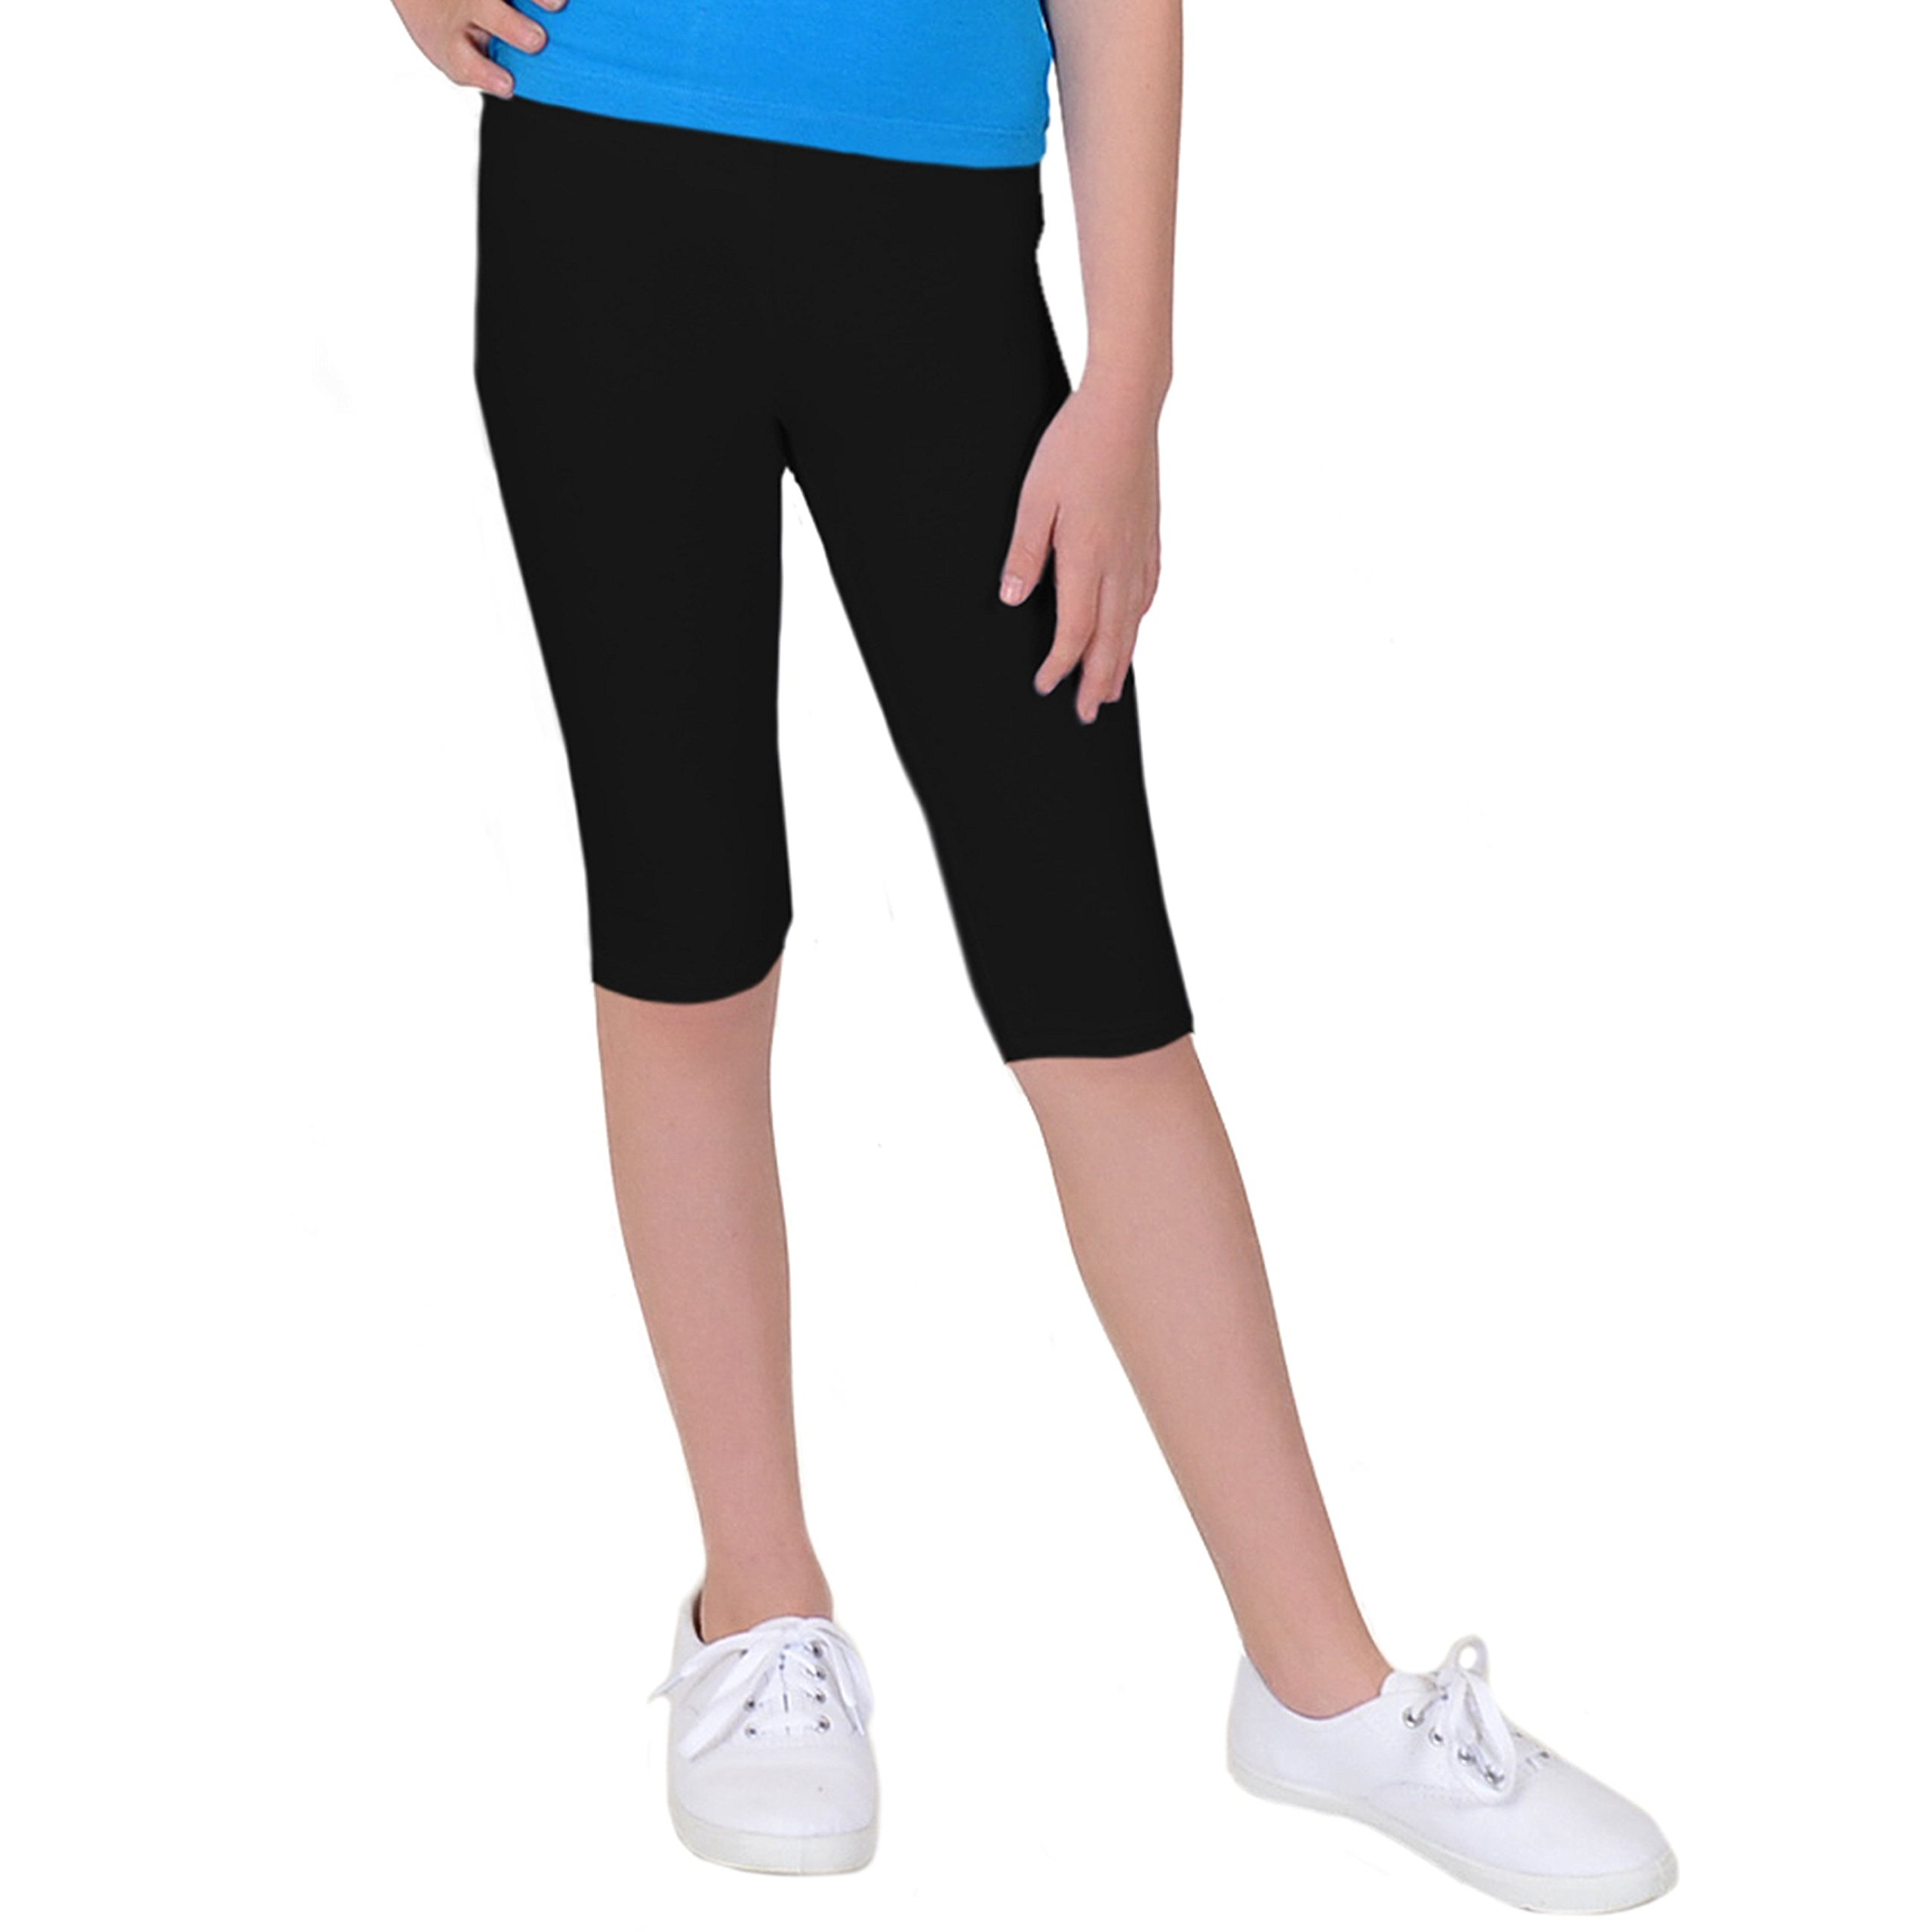 Stretch is Comfort GP Girl's Plus Size Cotton Capri Leggings Black Large by Stretch is Comfort (Image #1)